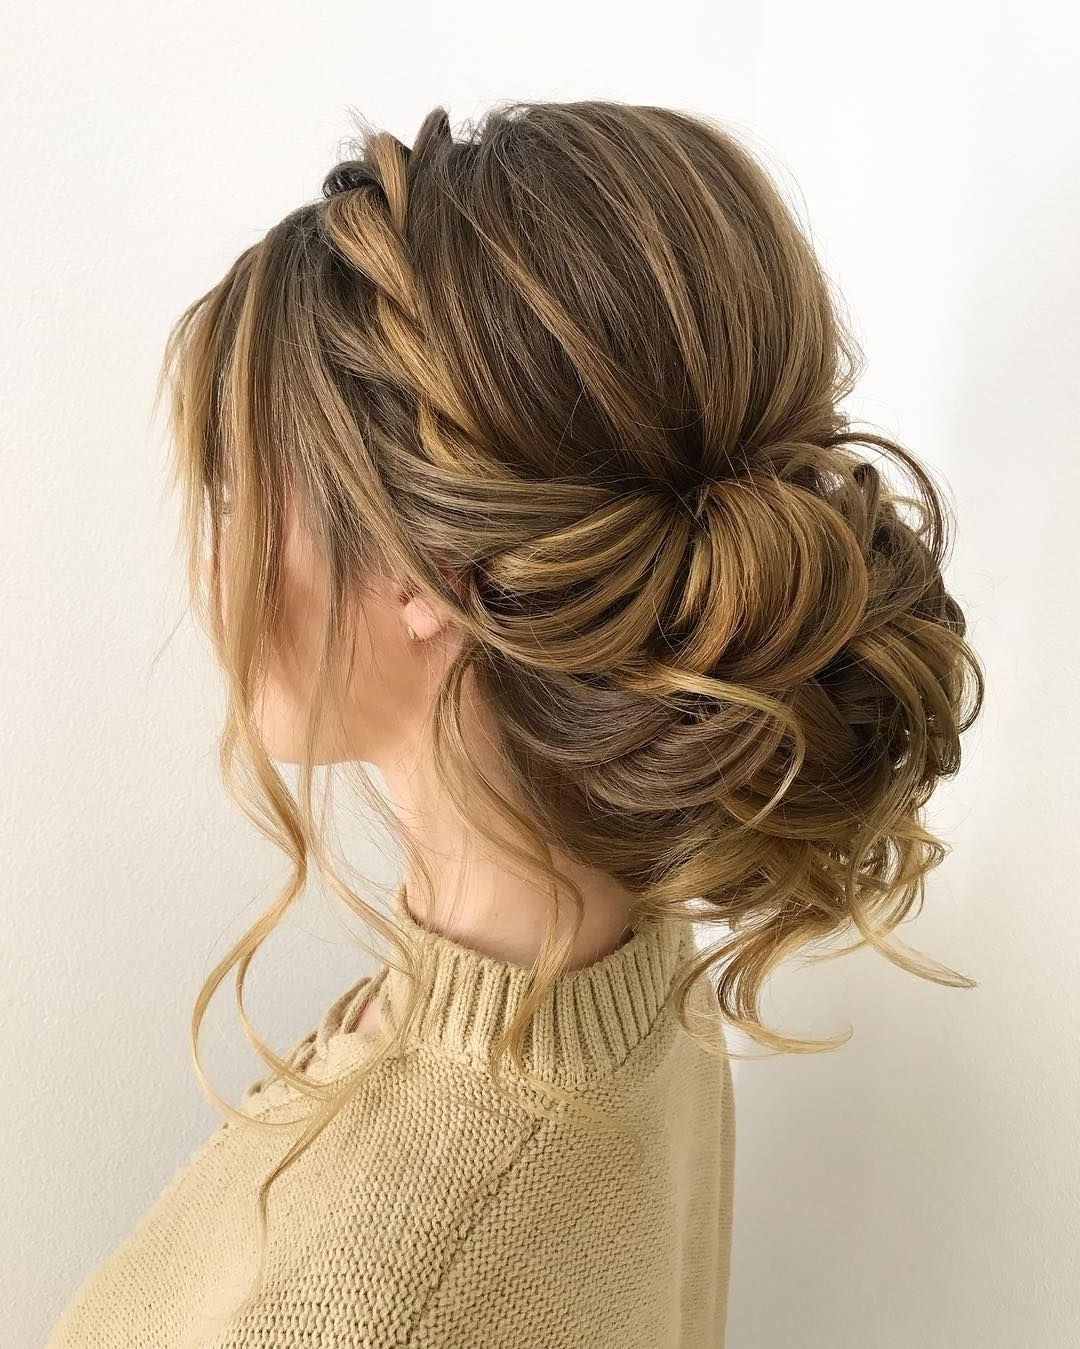 Gorgeous Wedding Updo Hairstyles That Will Wow Your Big Day For Widely Used Wedding Evening Hairstyles (View 5 of 15)